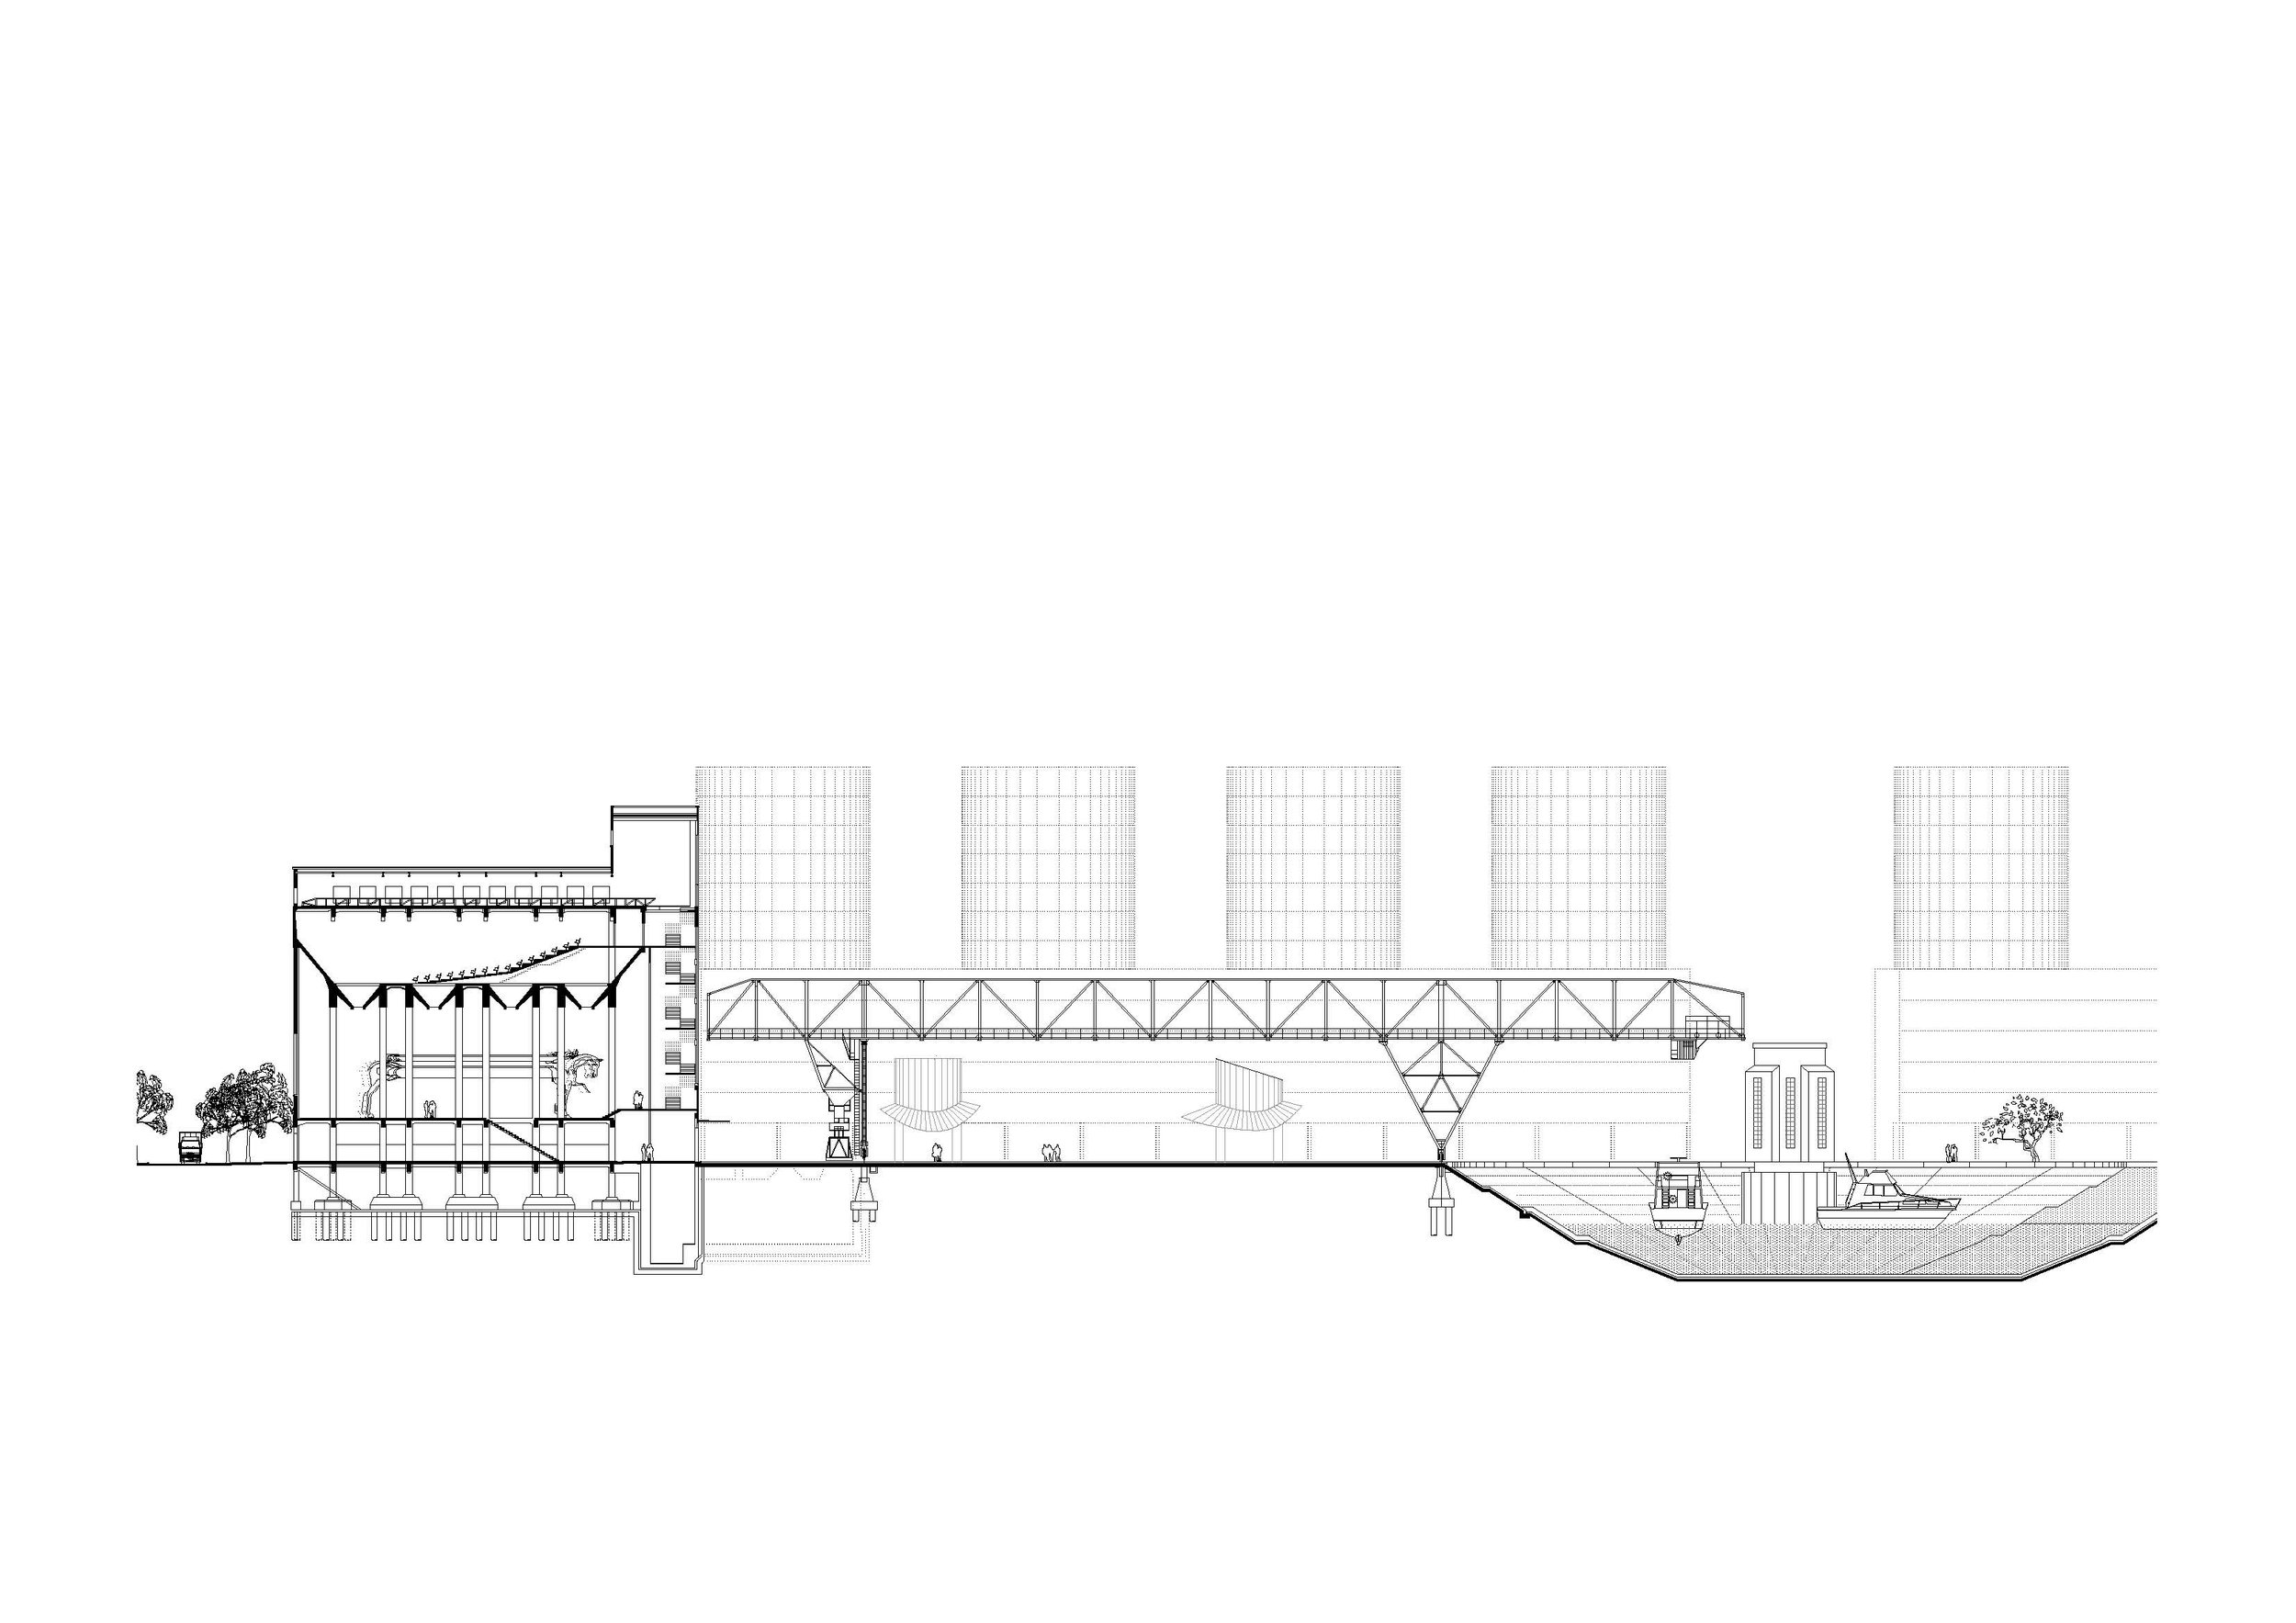 BASD - Thermal plant Section